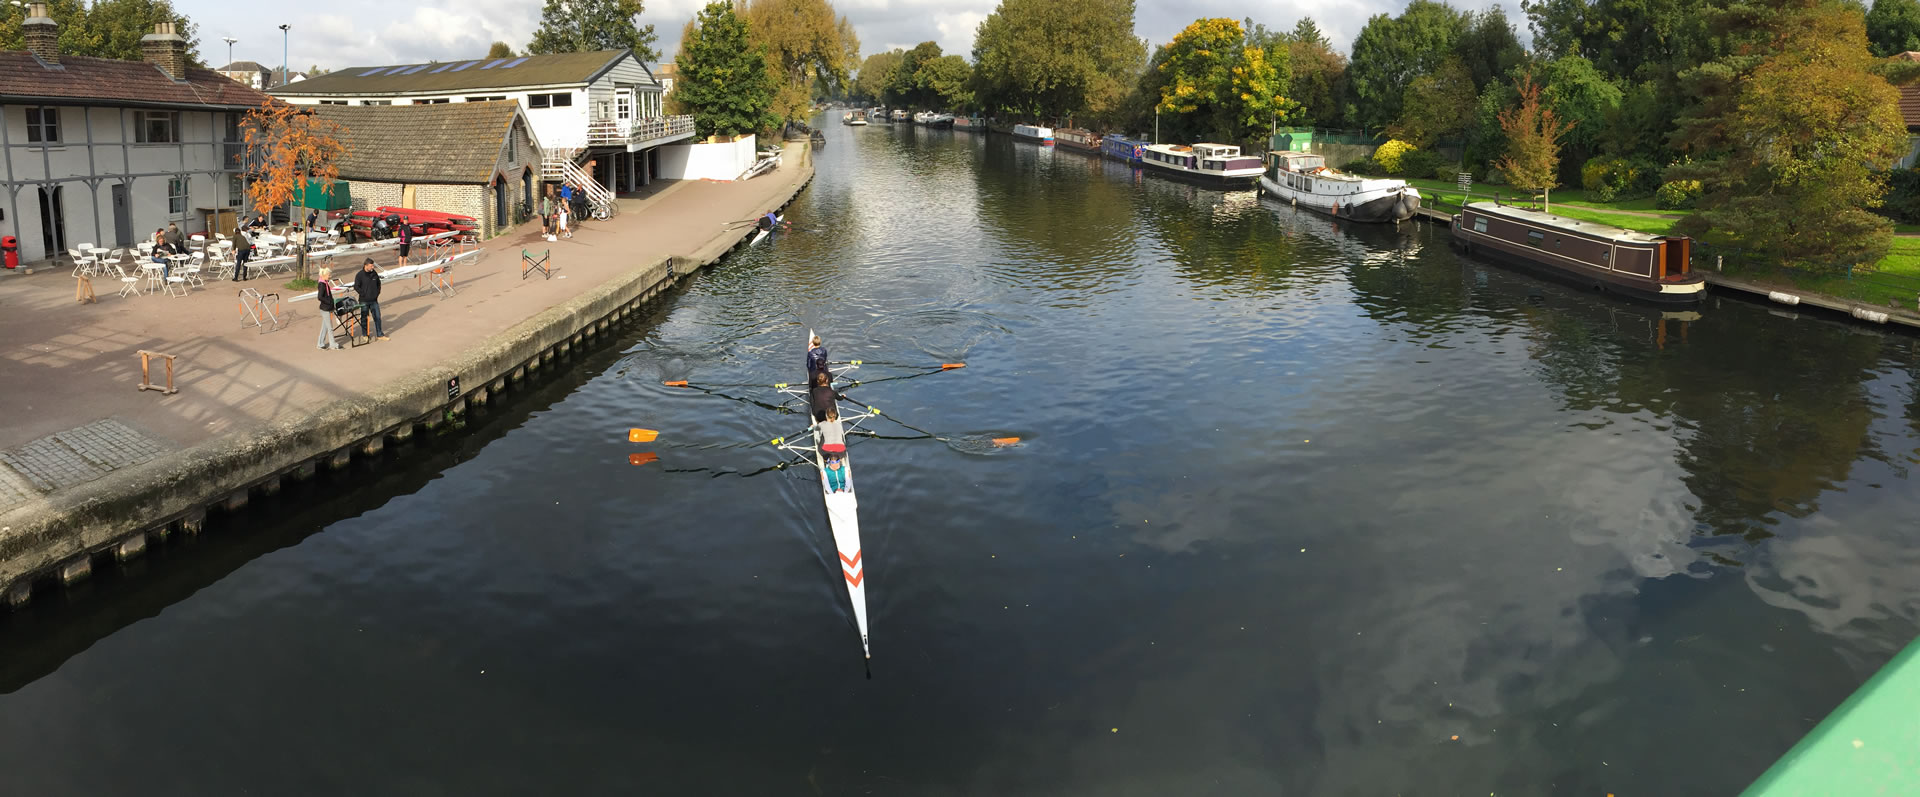 counselling_psychotherapy_IanBurtontherapy_river_rowers